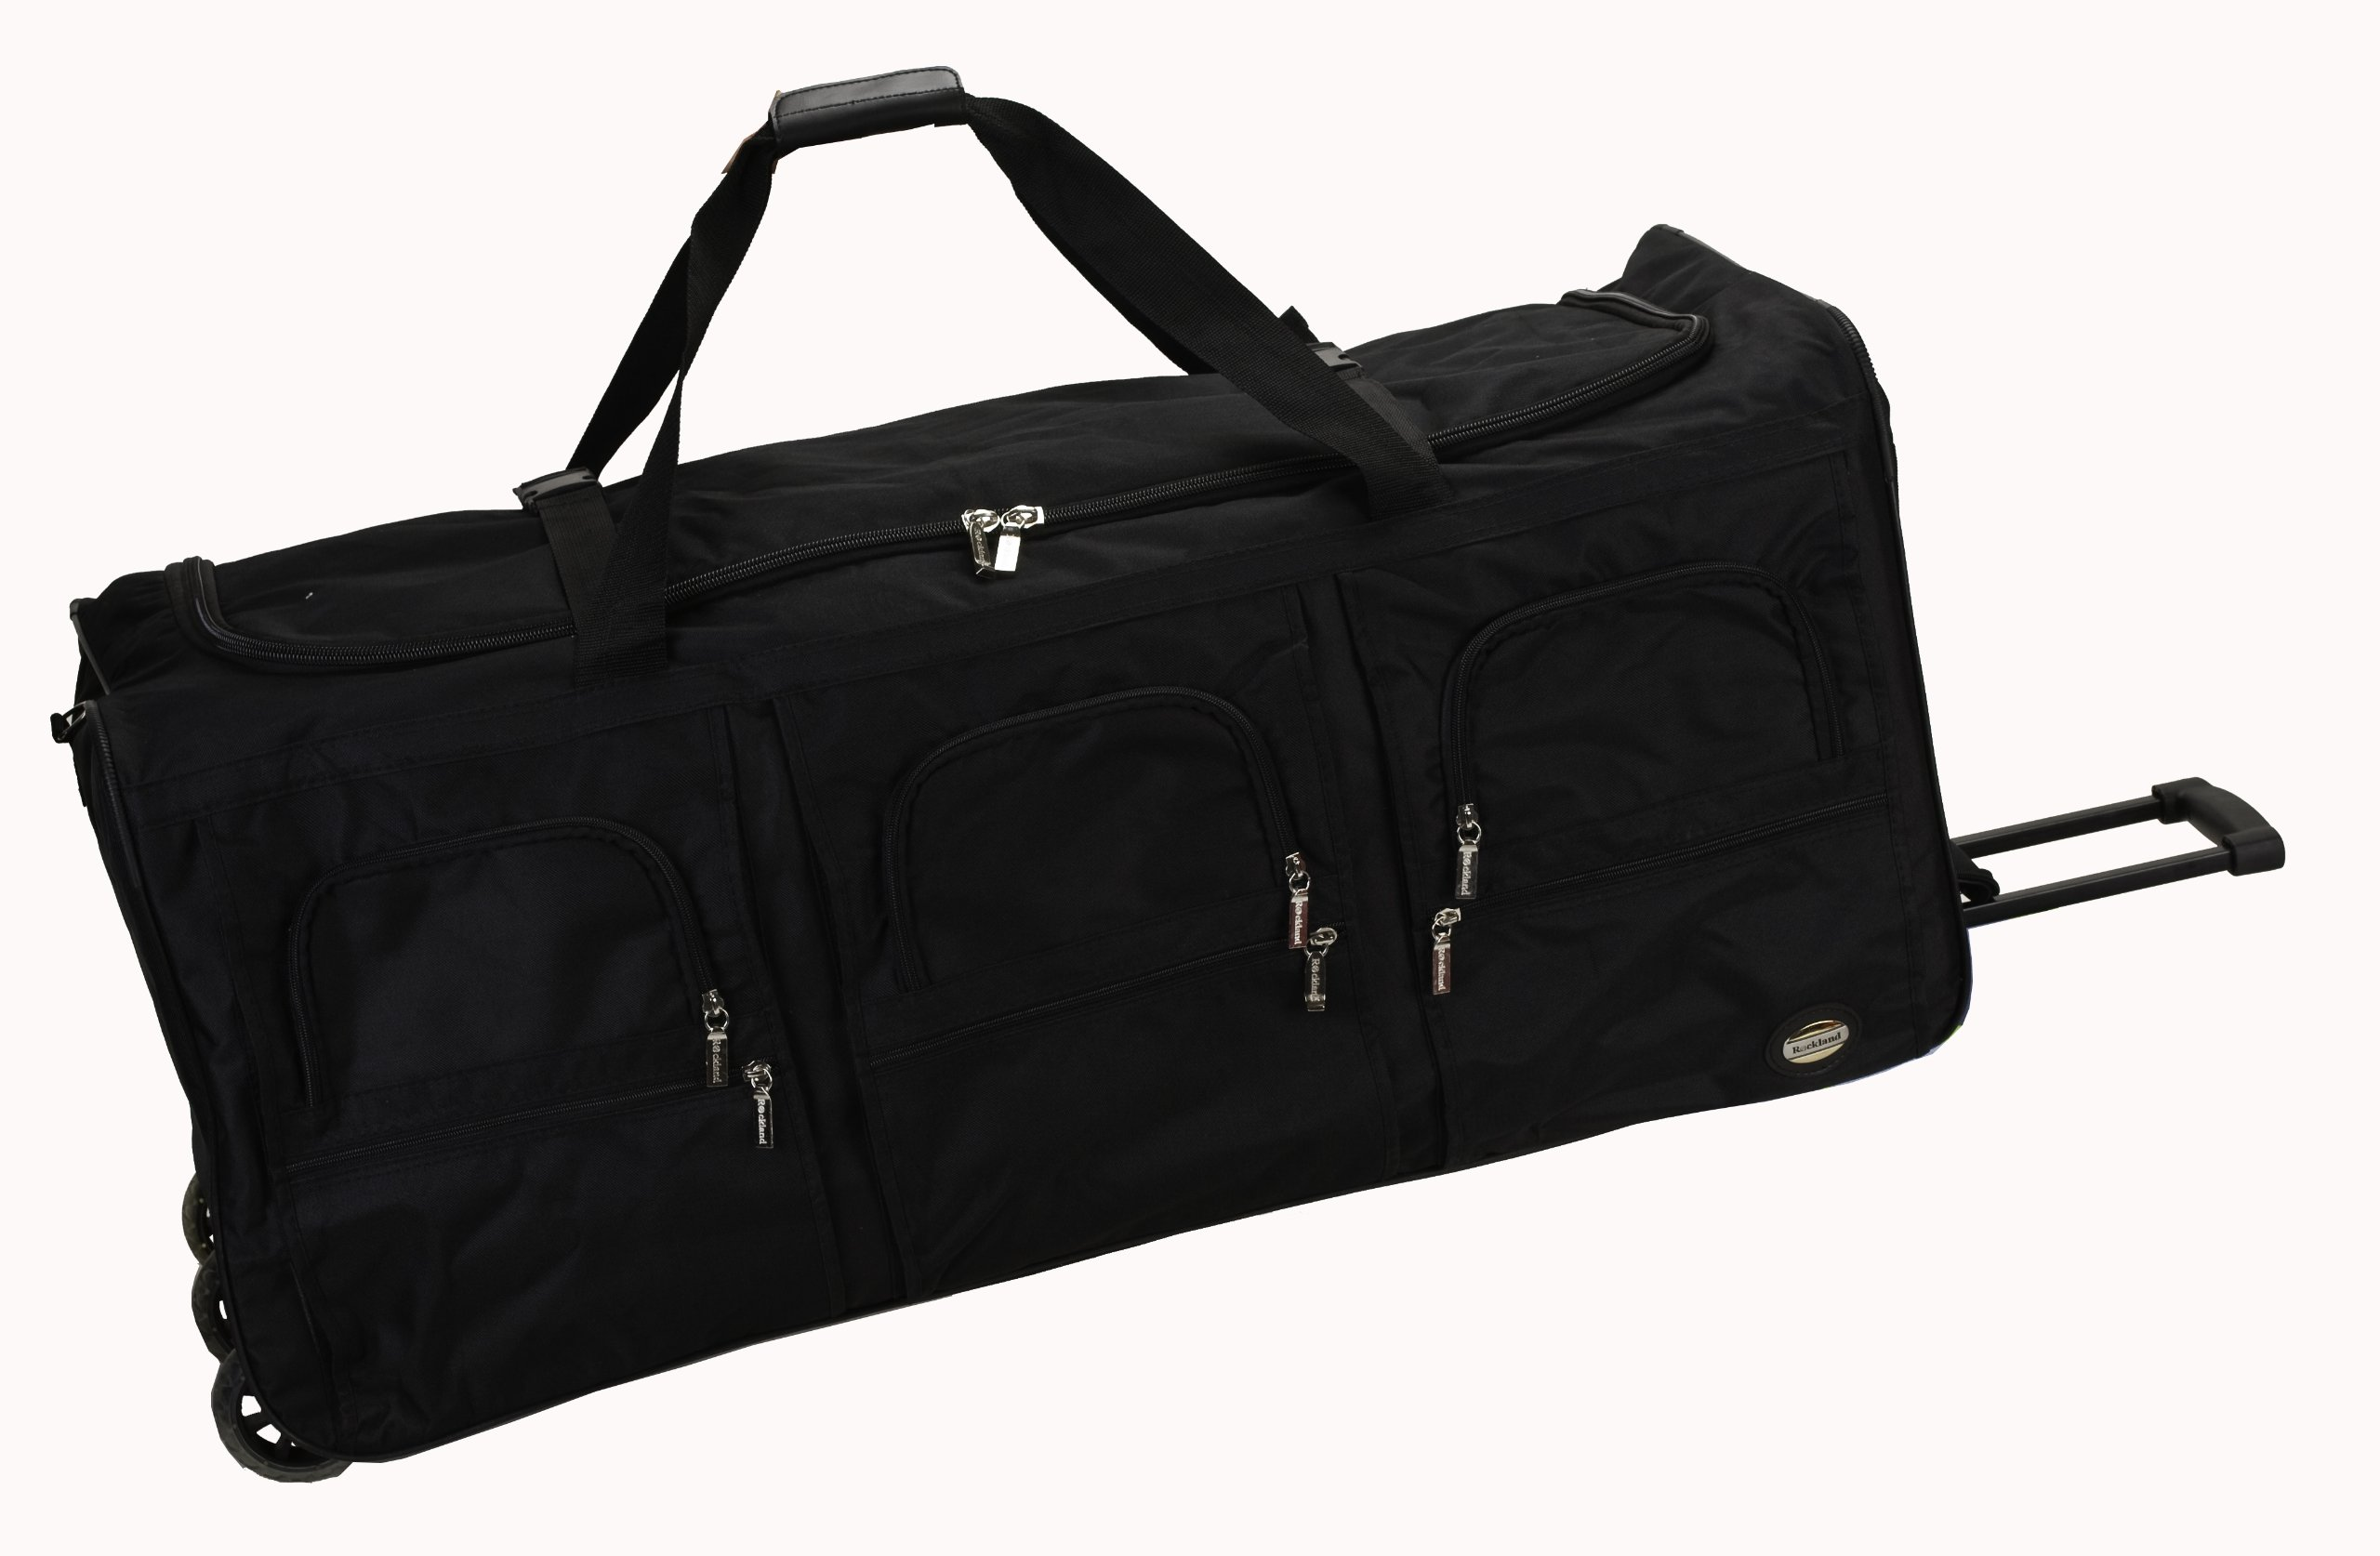 Rockland Luggage 40 Inch Rolling Duffle Bag, Black, X-Large by Rockland